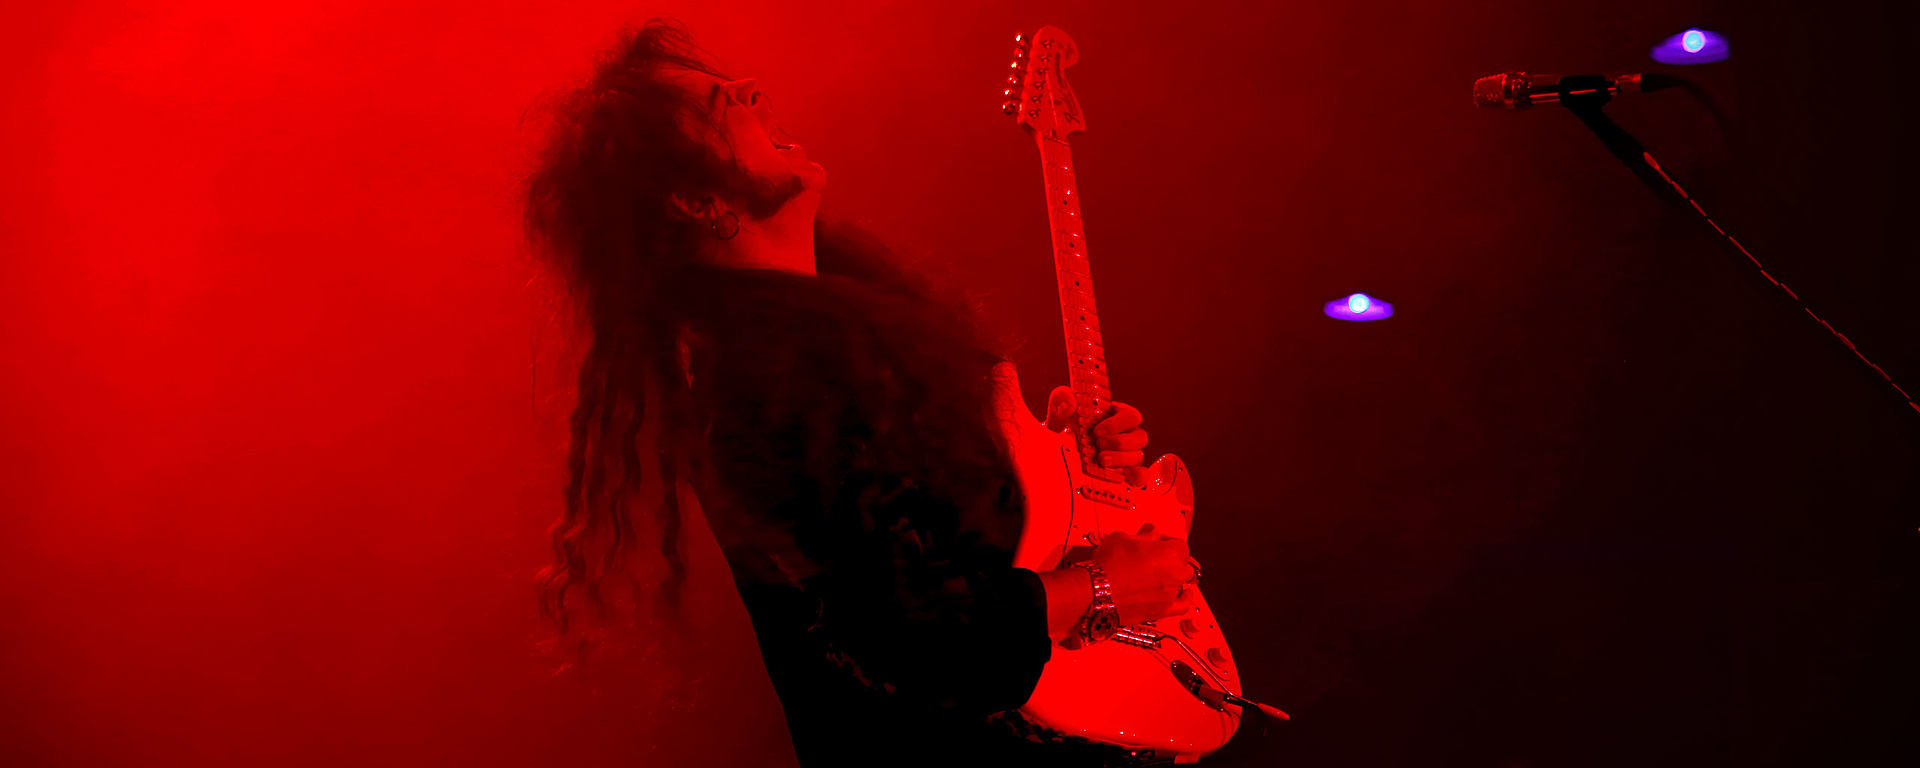 Yngwie Malmsteen uses the MTP 550 DM vocal mic live onstage